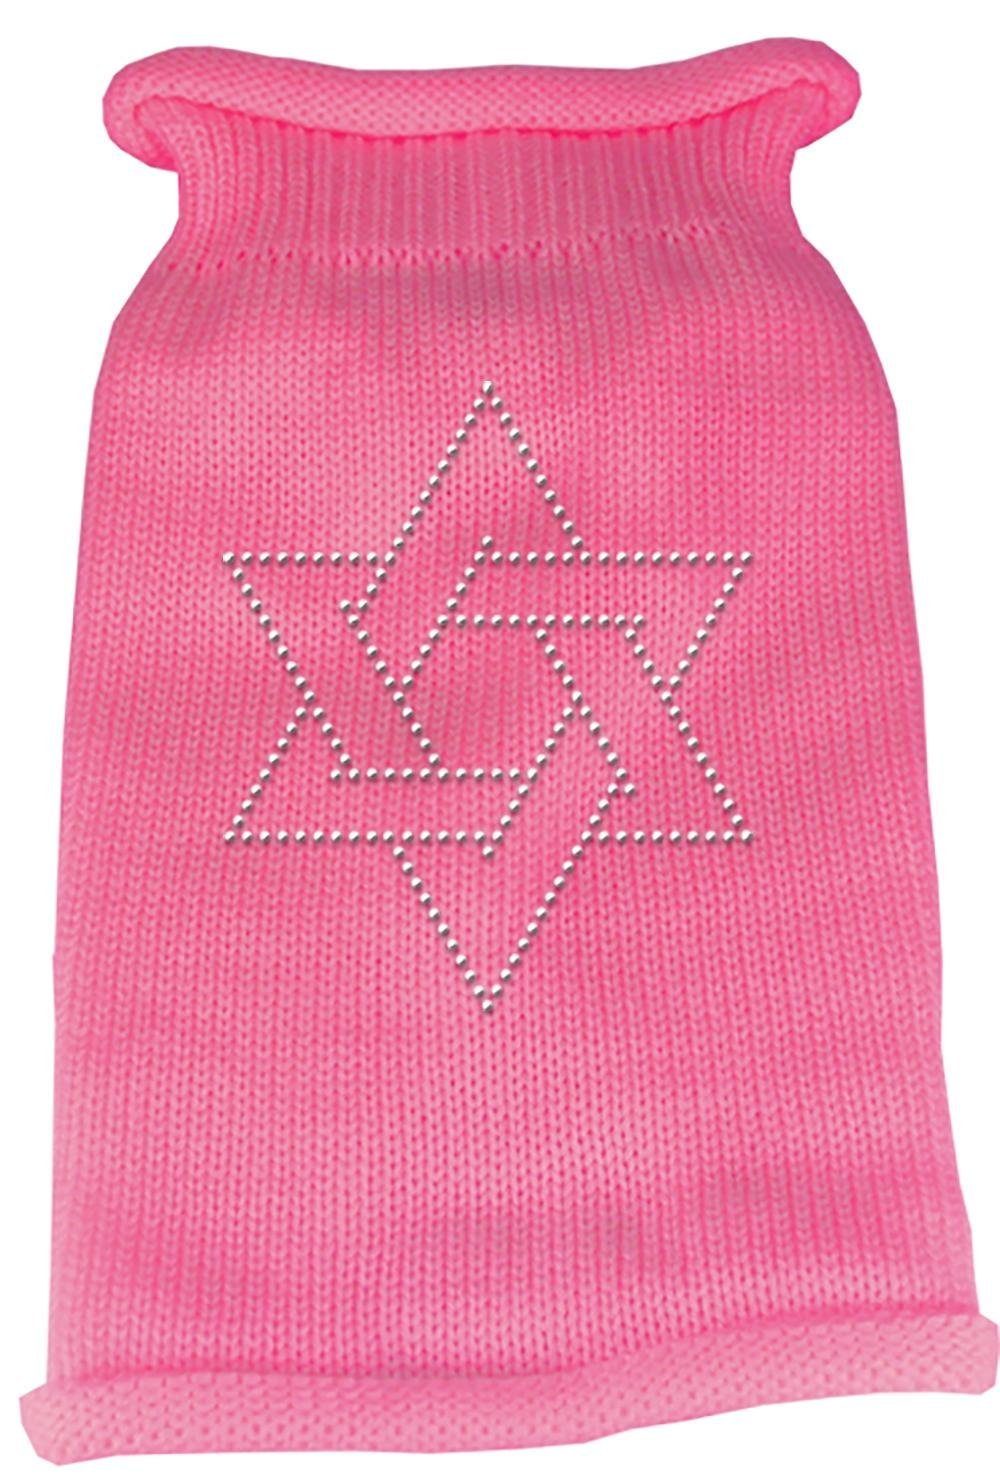 Mirage Pet Products Star of David Rhinestone Knit Pet Sweater, Medium, Pink